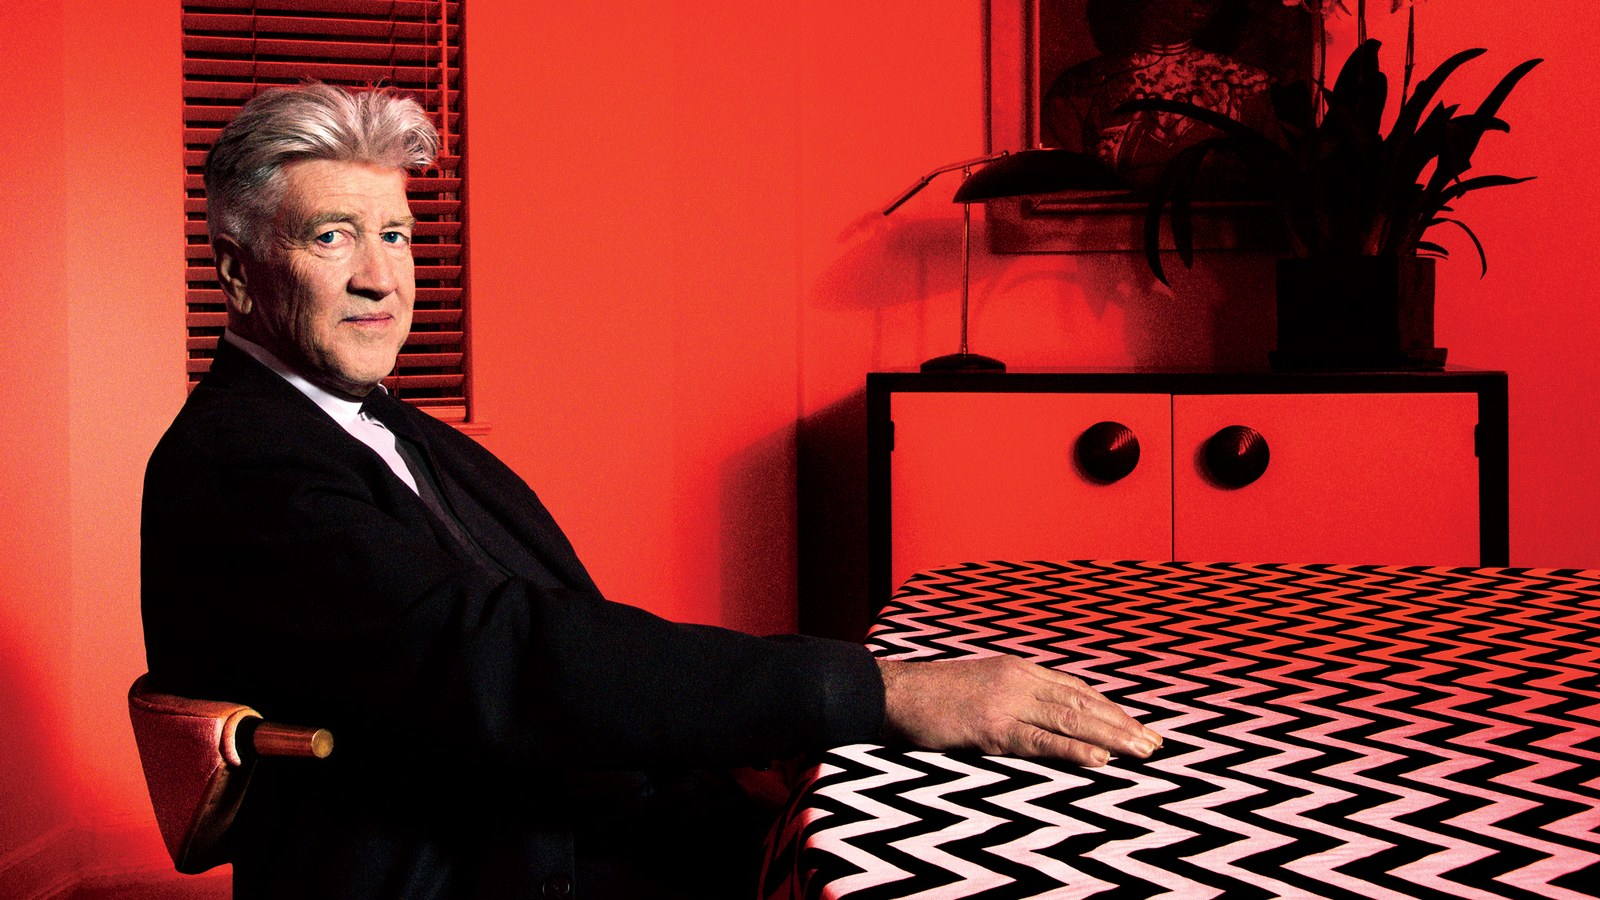 David Lynch photographed for GQ magazine, March 2017